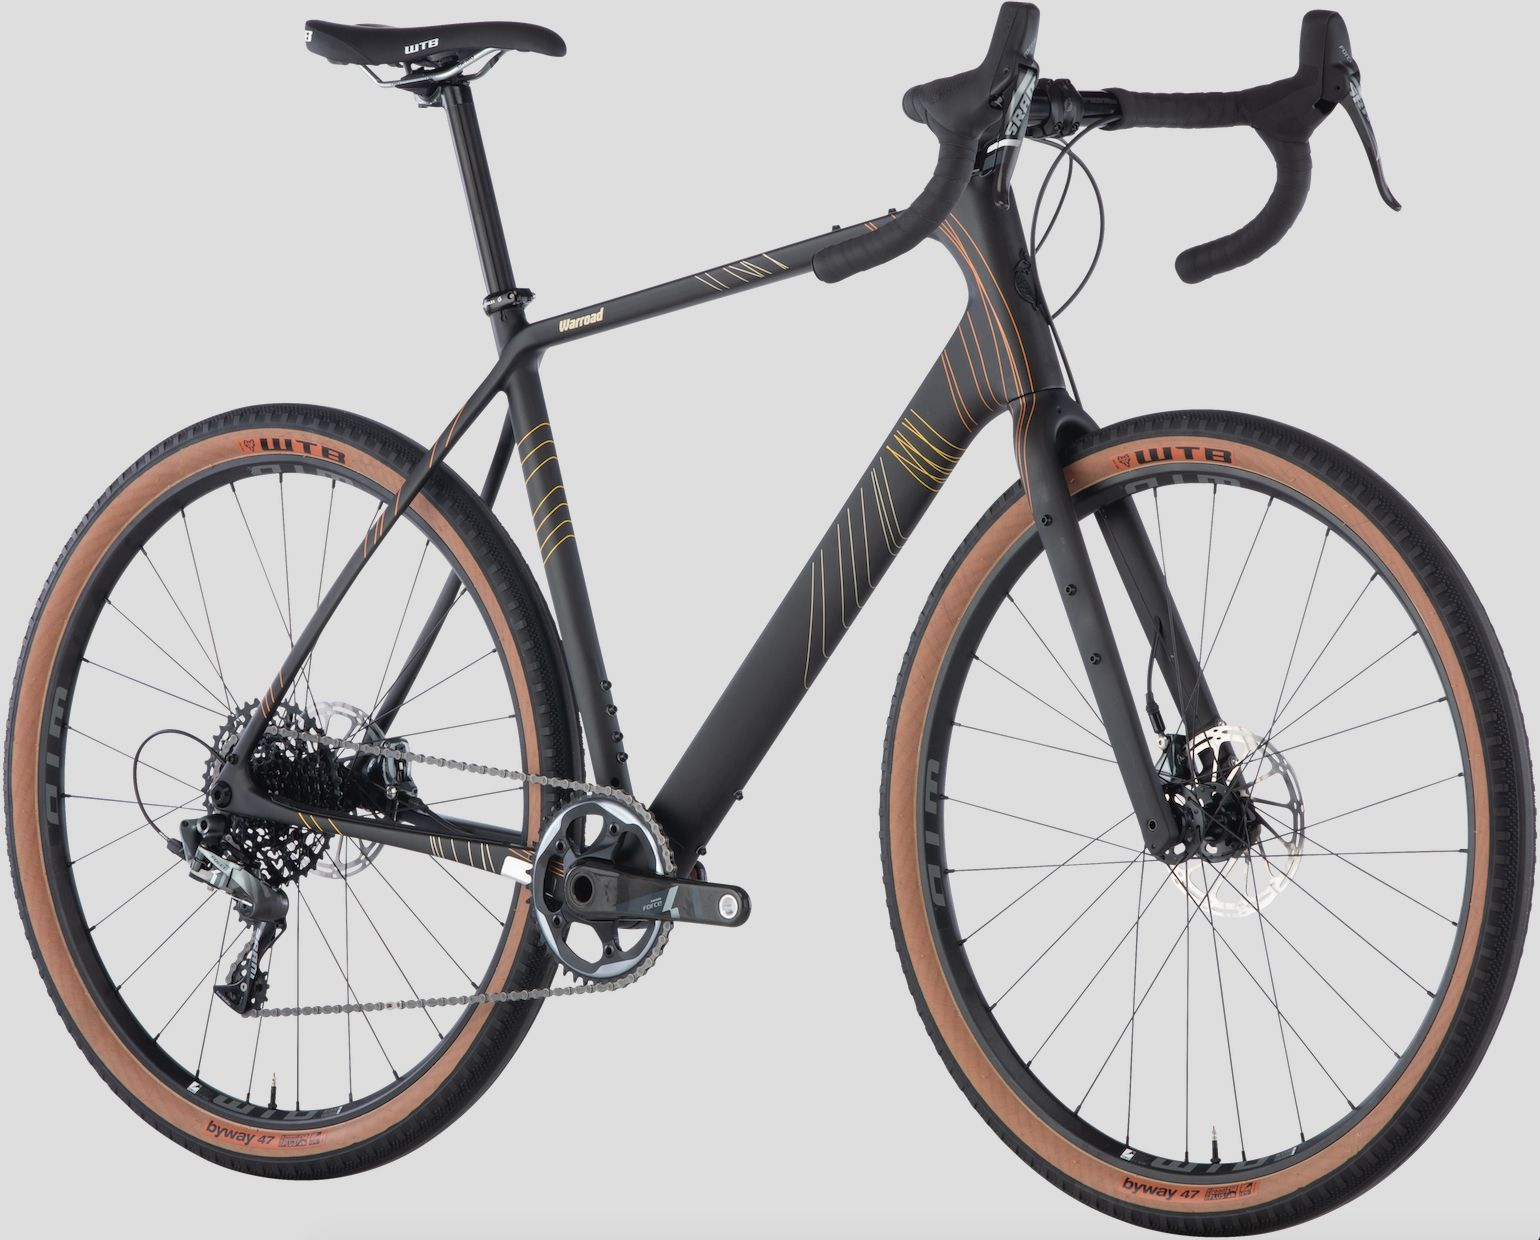 Warroad Carbon Force 1 650 Gravel Bike Bike